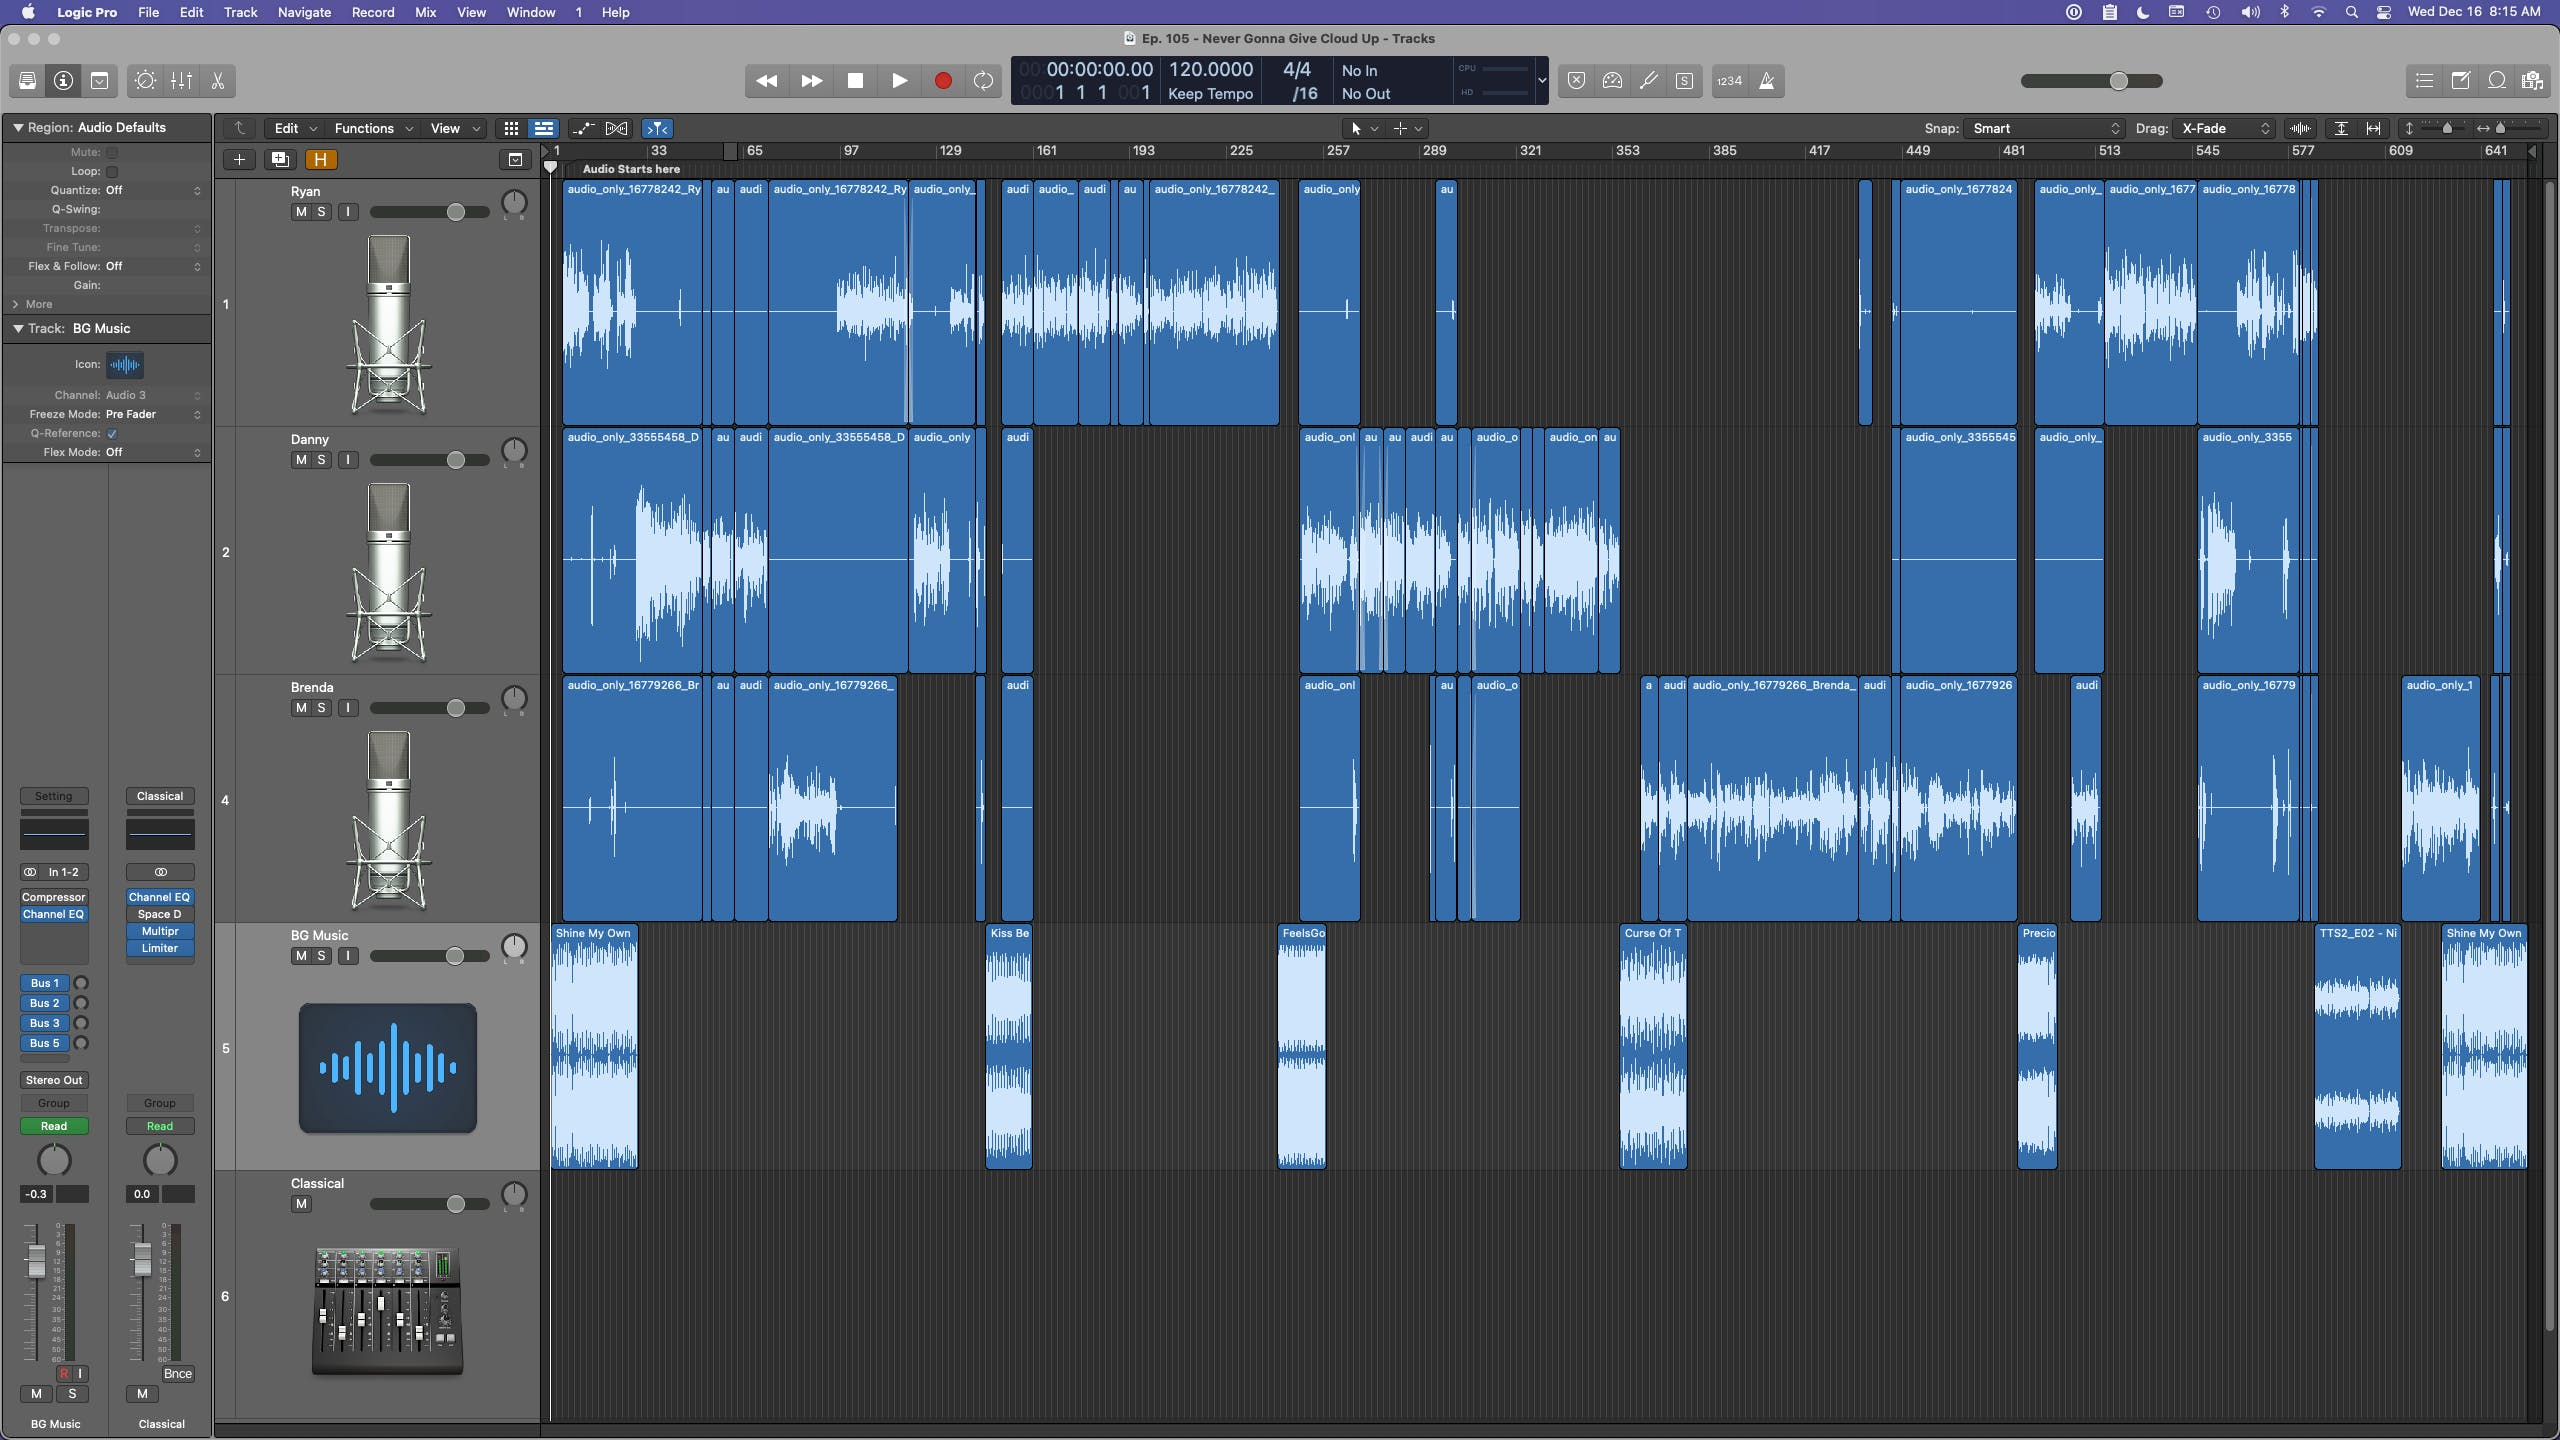 This is what Episode 105 looks like in Logic Pro X.